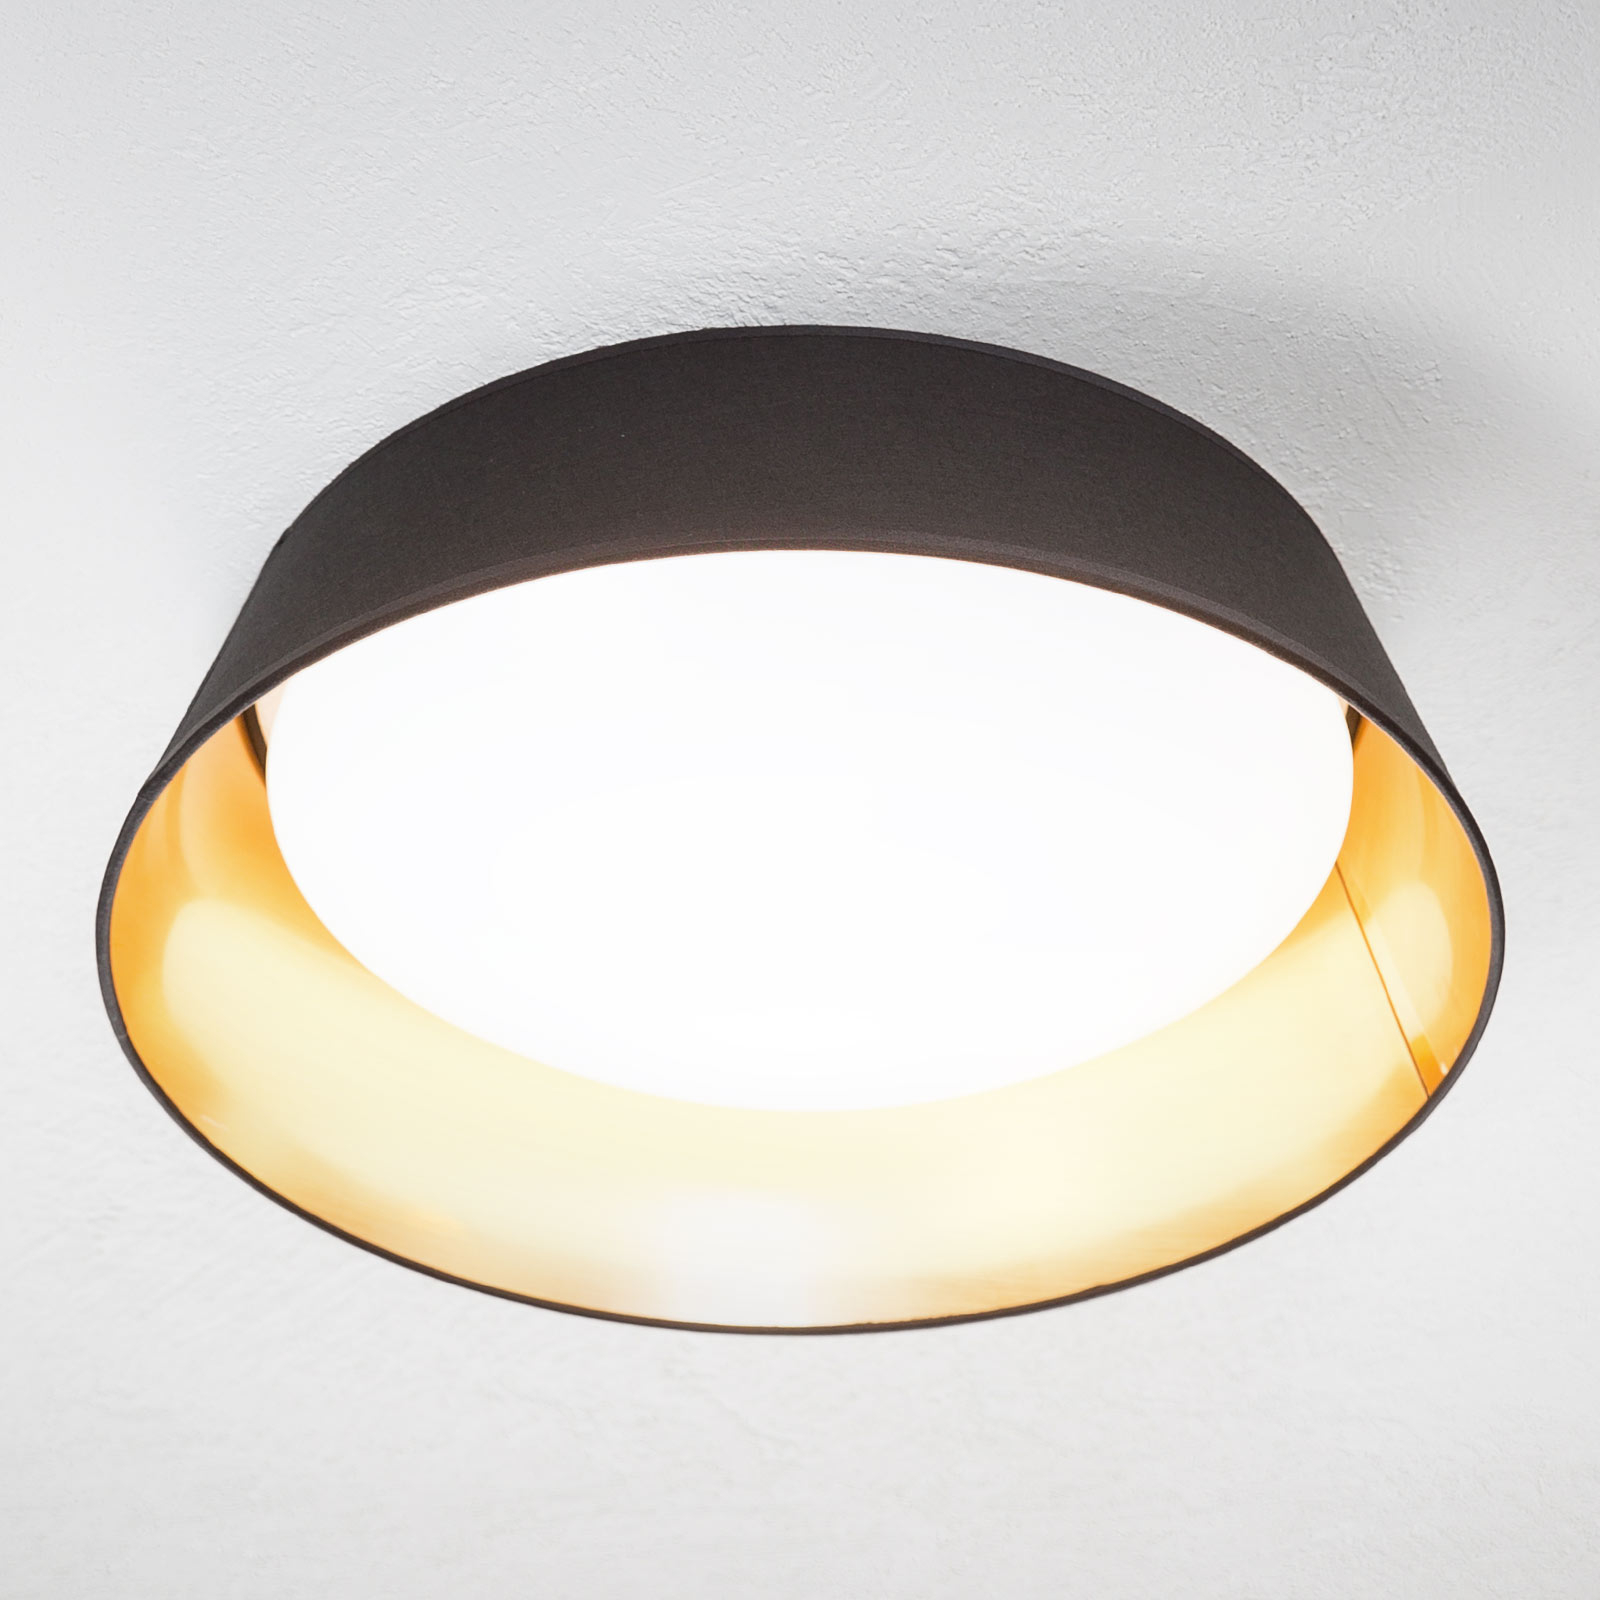 In zwart-goud - ronde LED plafondlamp Ponts